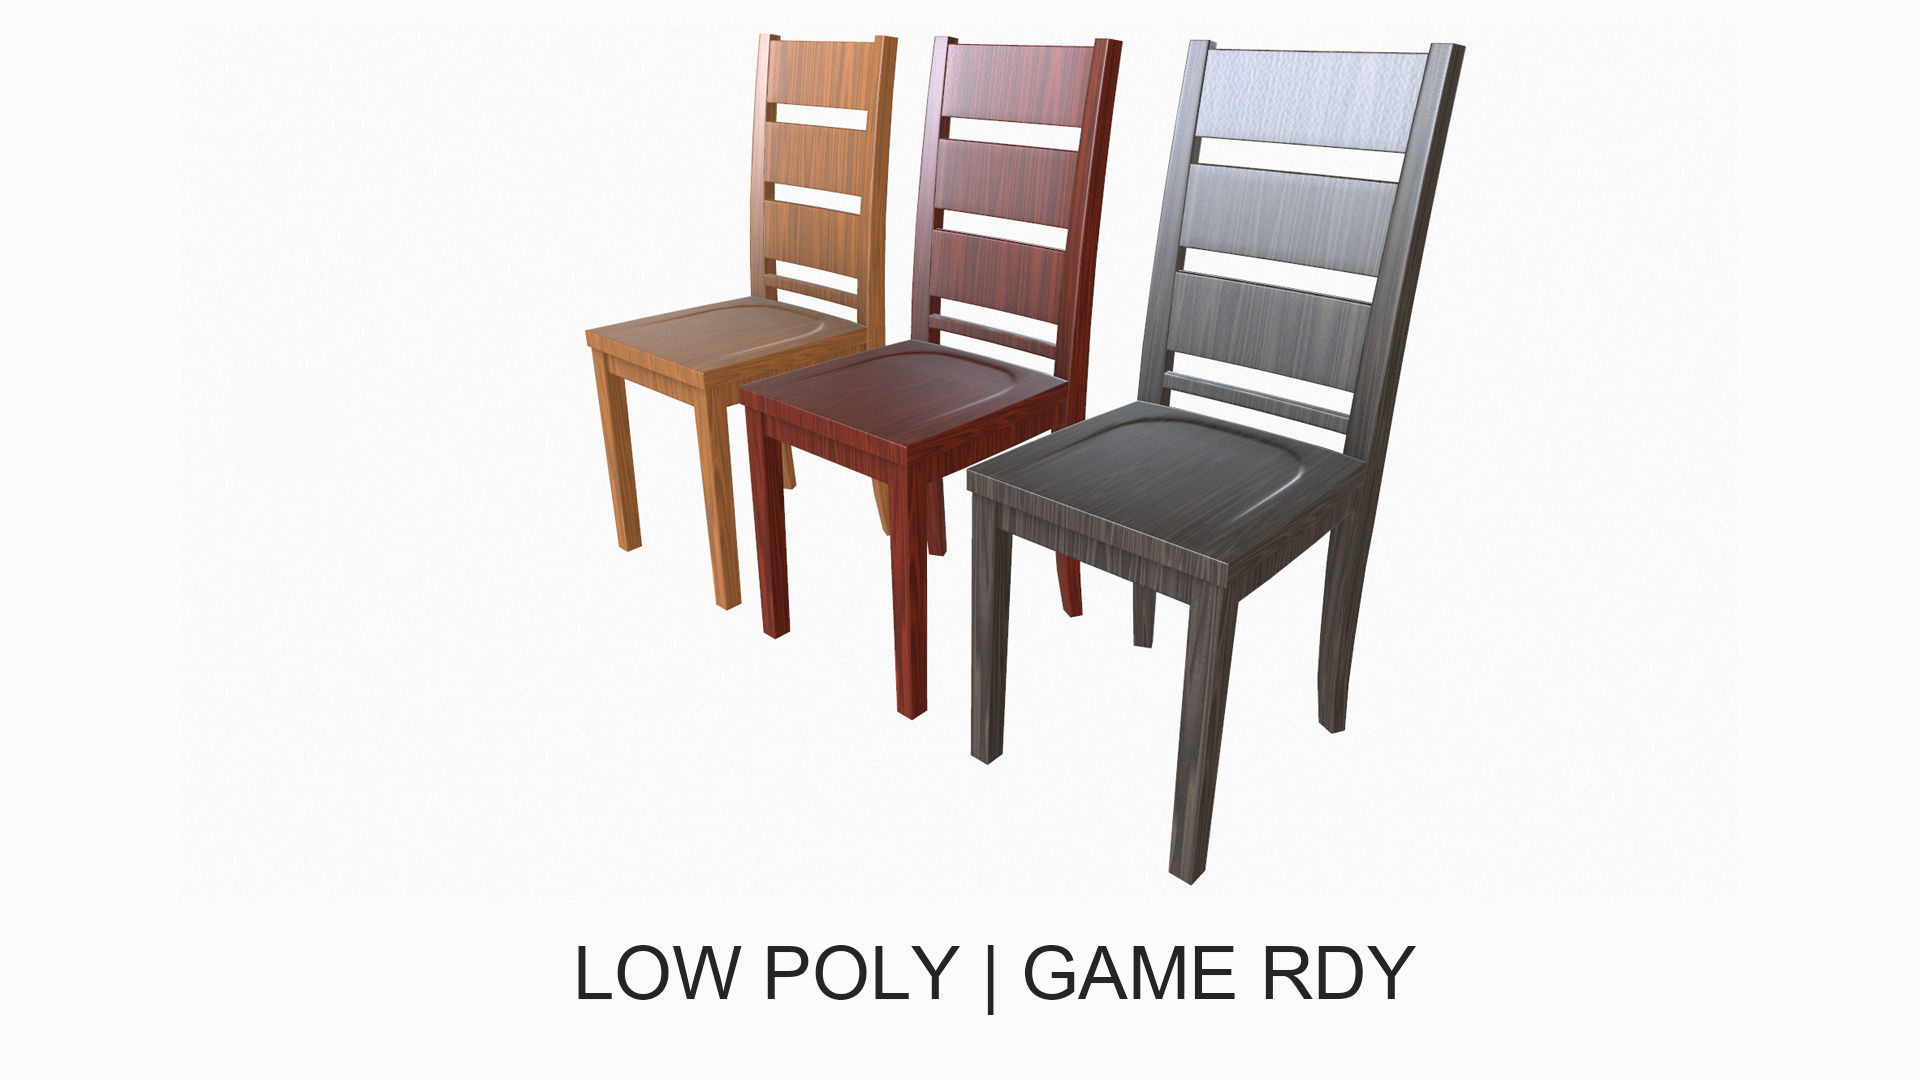 Simple Wooden Dining Chair 3d Model Low Poly Obj Fbx 1 ...